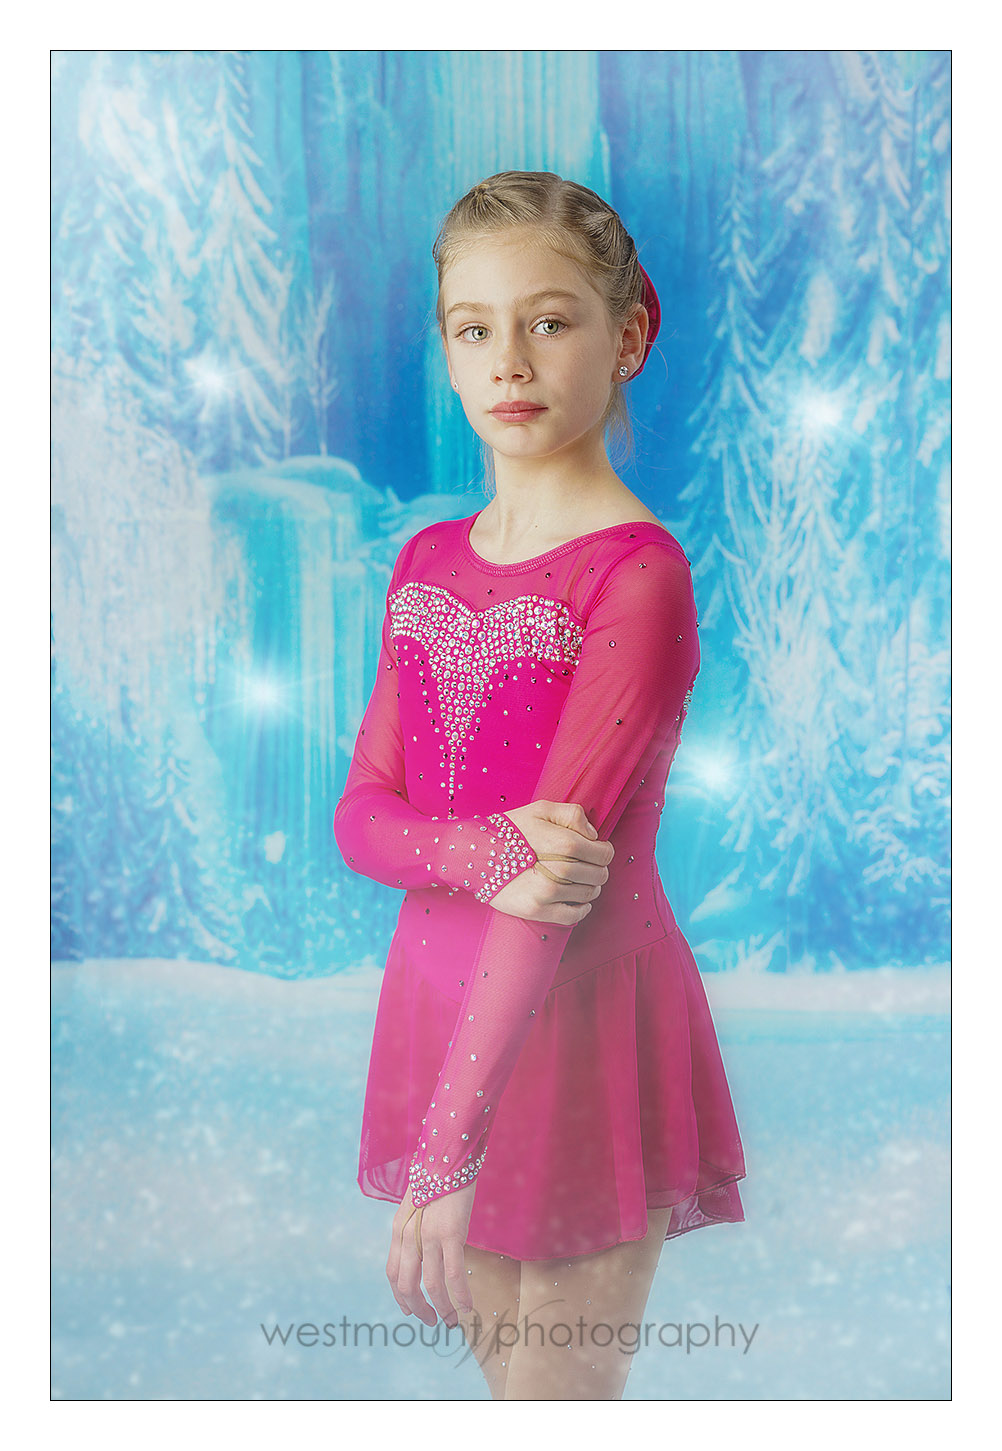 In studio figure skater photography…